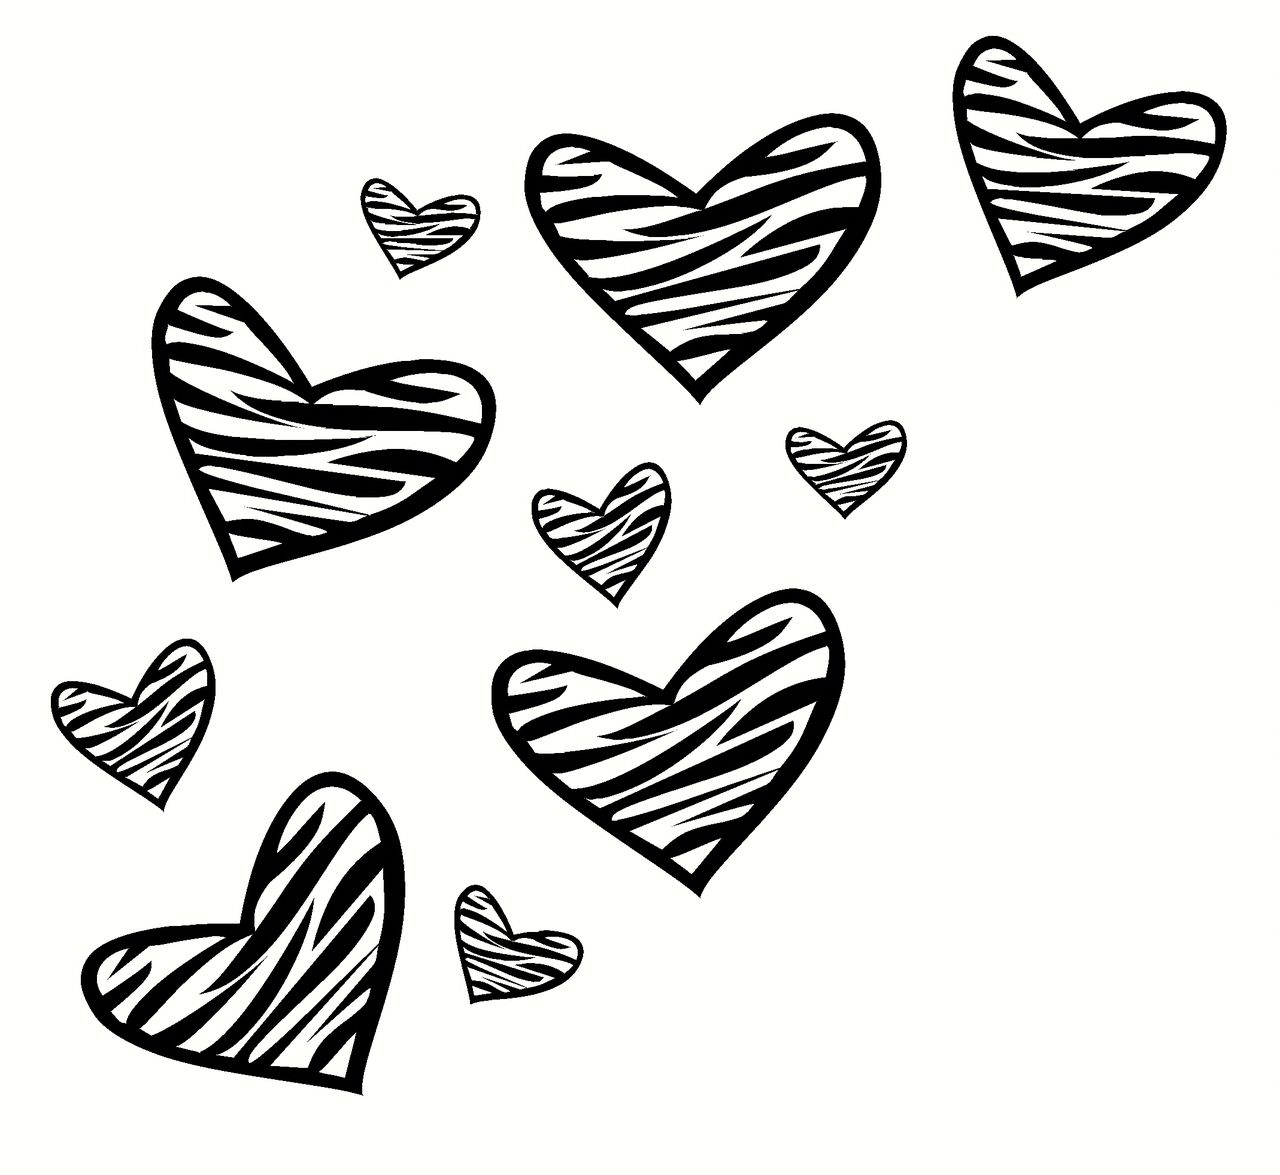 Zebra Print Heart Wall Decor Vinyl Decal Stickers 10pc